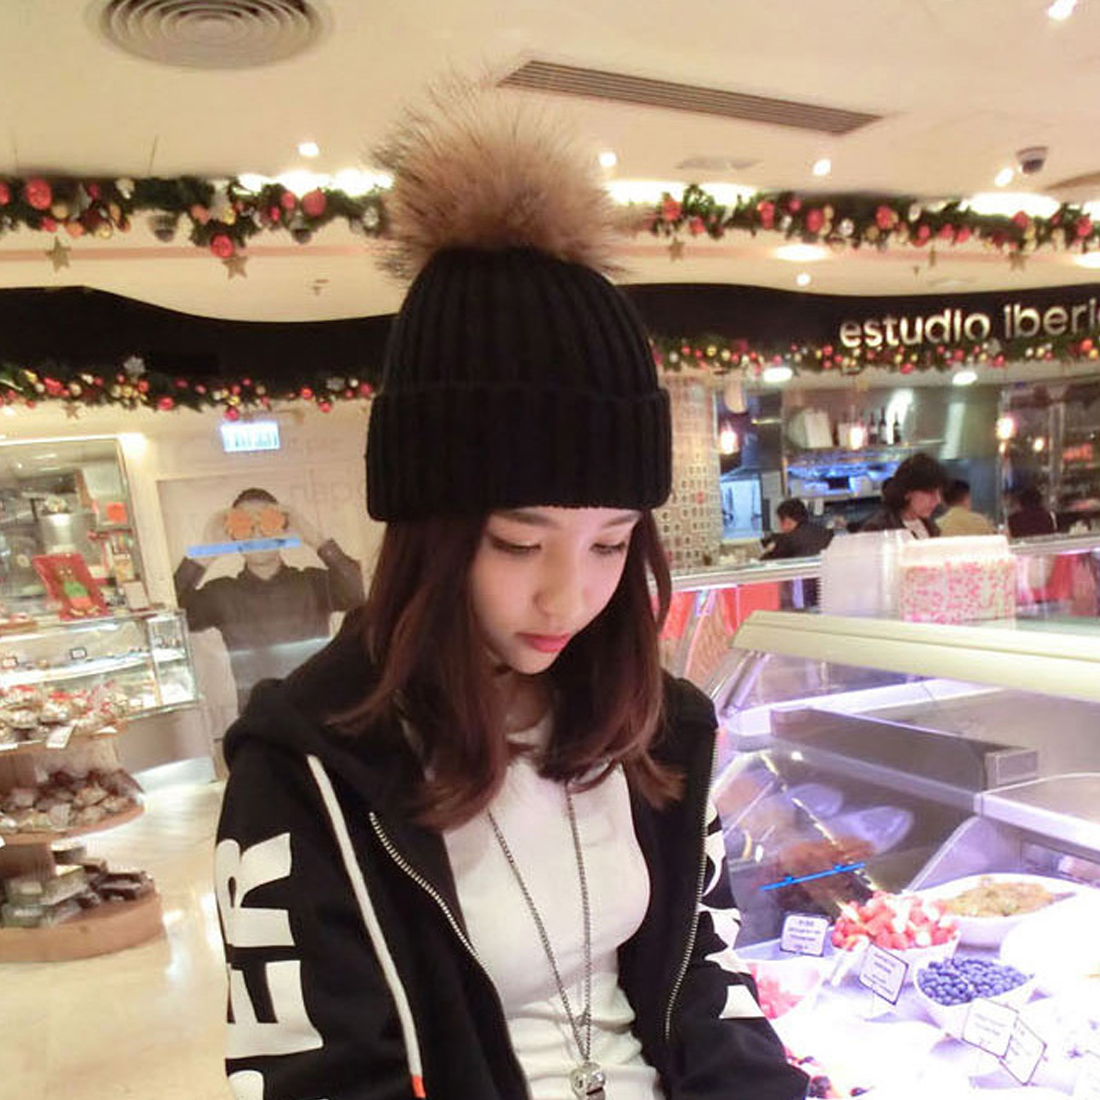 Classic Design Women Spring Winter Hats Beanies Knitted Cap Crochet Hat Rabbit Fur Pompons Ear Protect Casual Cap